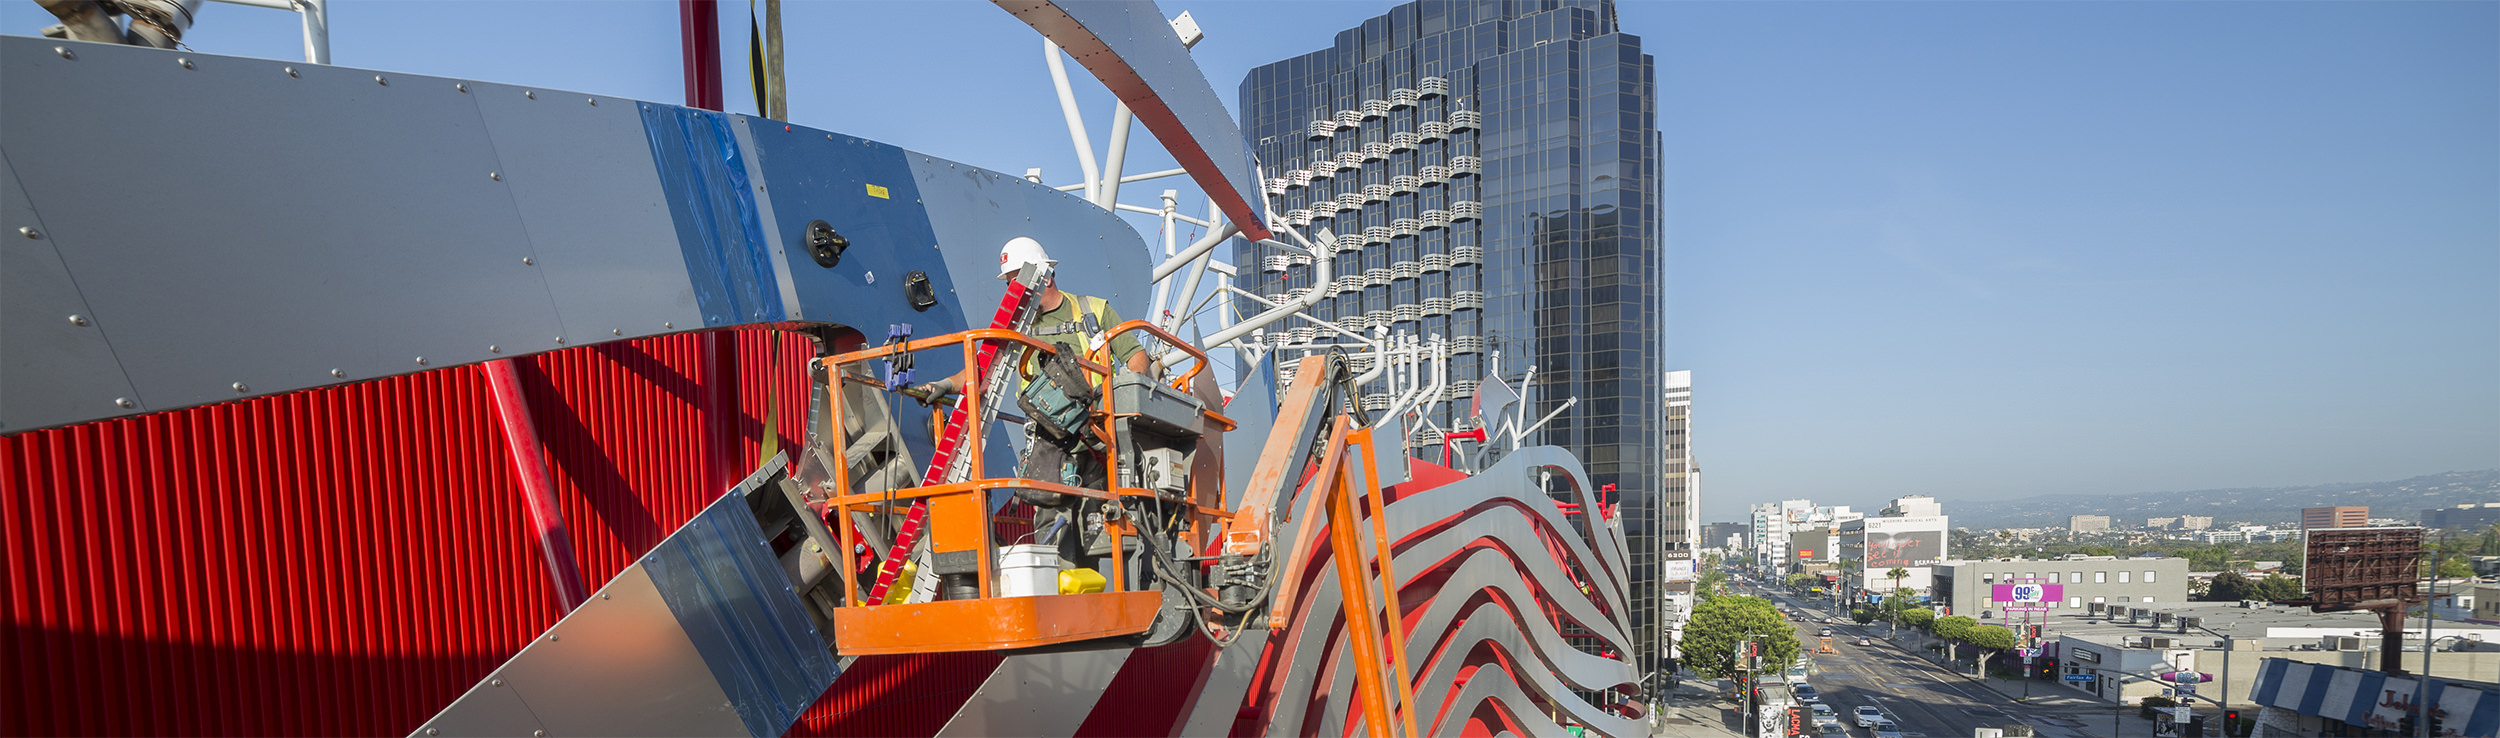 Example of a complex Zahner field installation at The Petersen Automotive Museum in Los Angeles, designed by KPF.